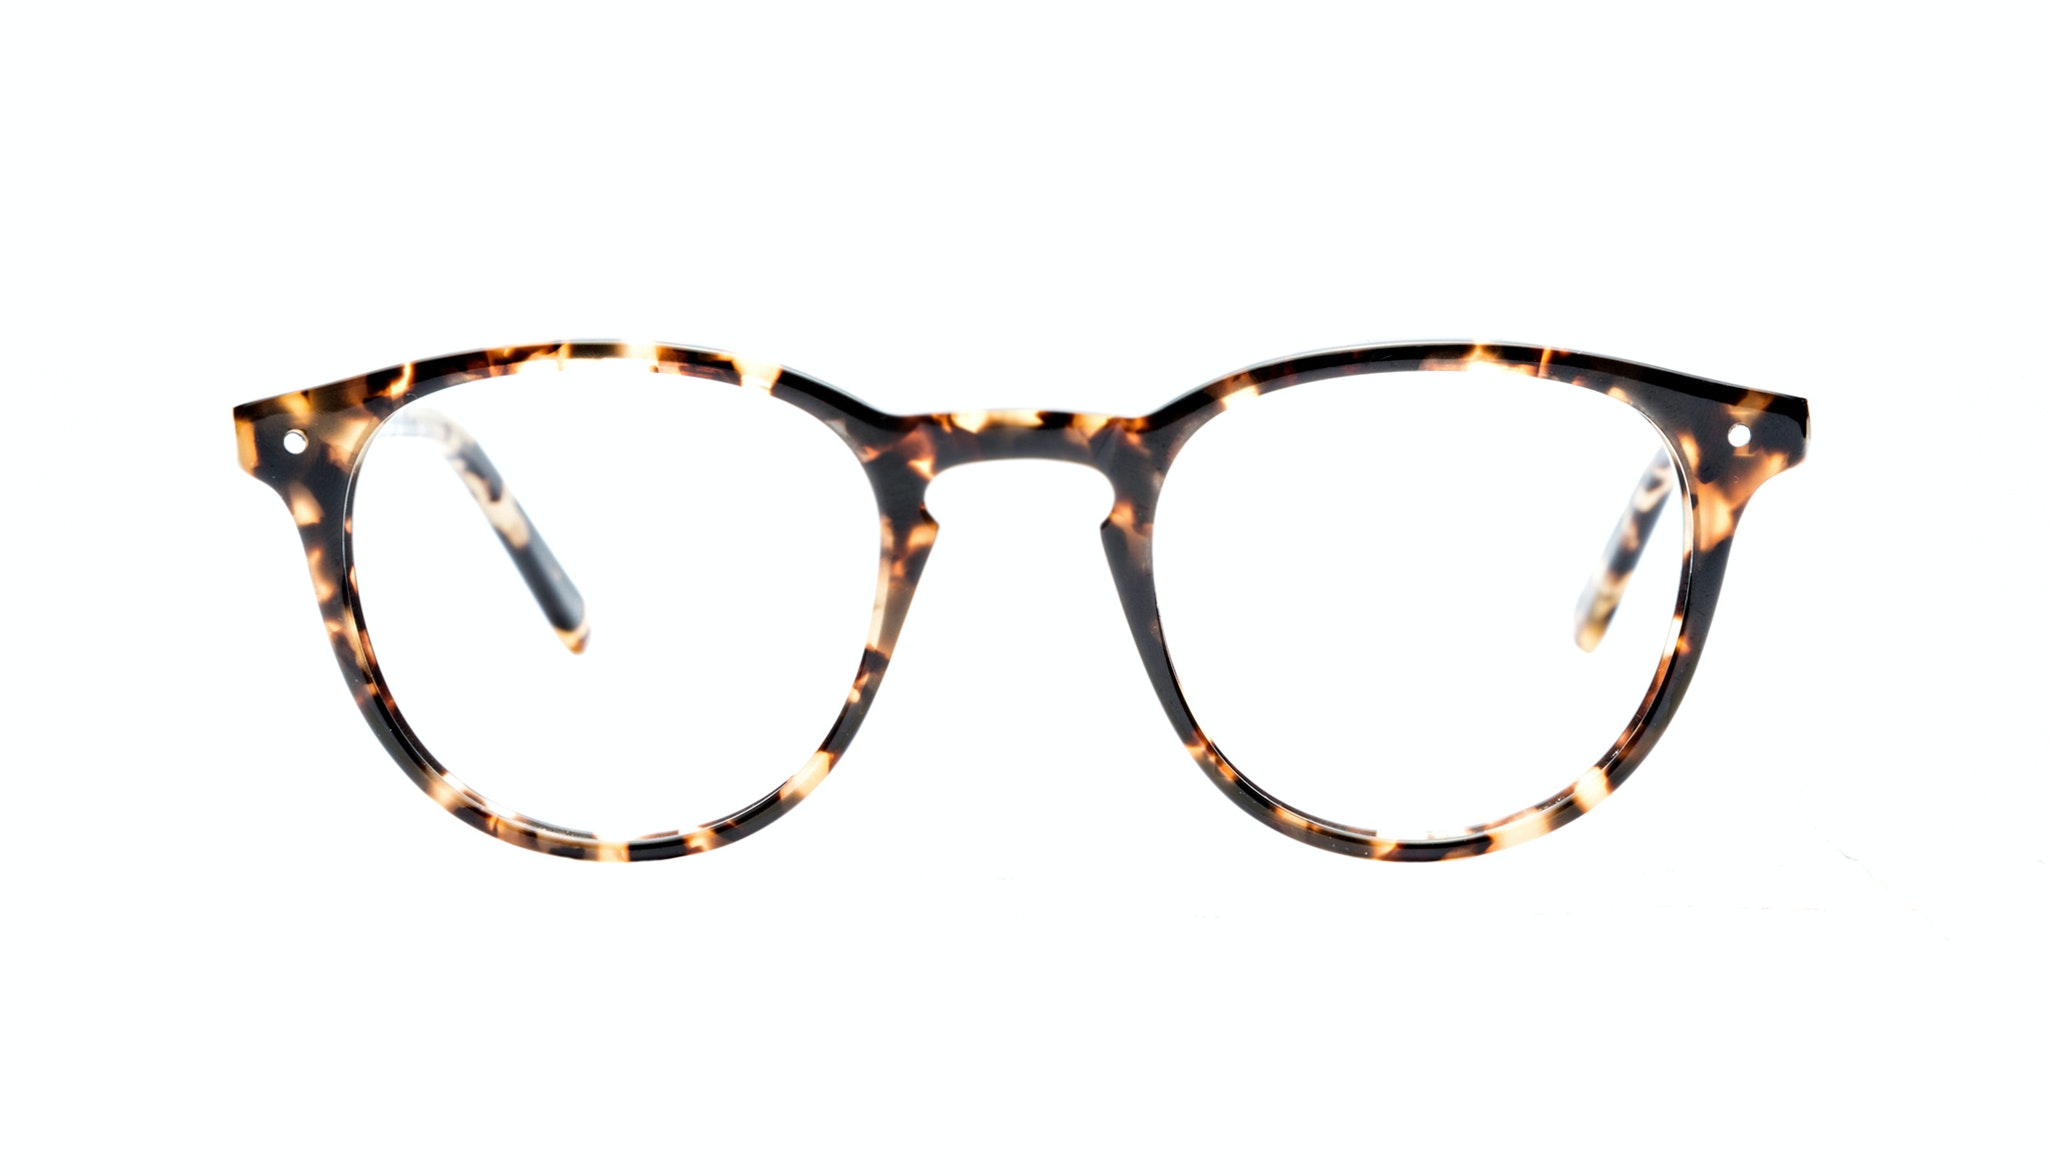 Affordable Fashion Glasses Round Eyeglasses Men Women Cult Dark Tortoise